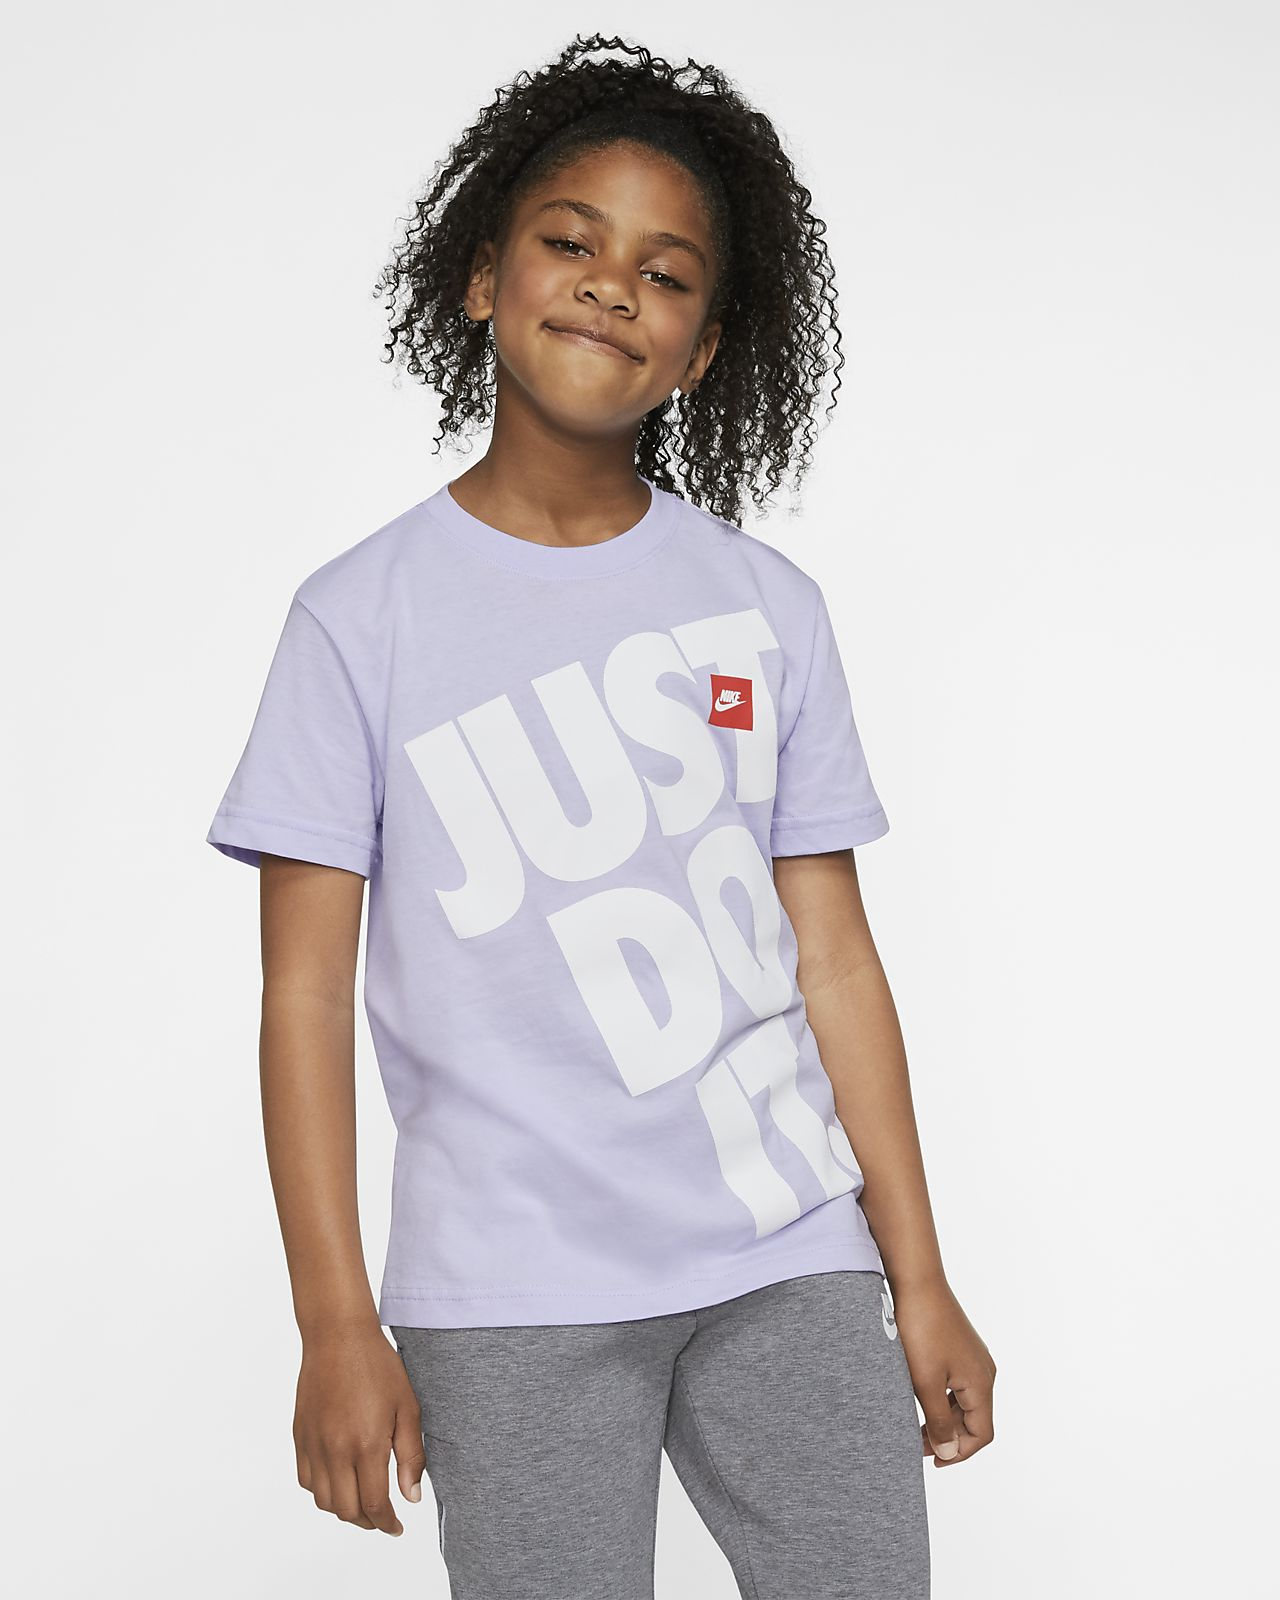 Nike Sportswear Big Kids' JDI T-Shirt